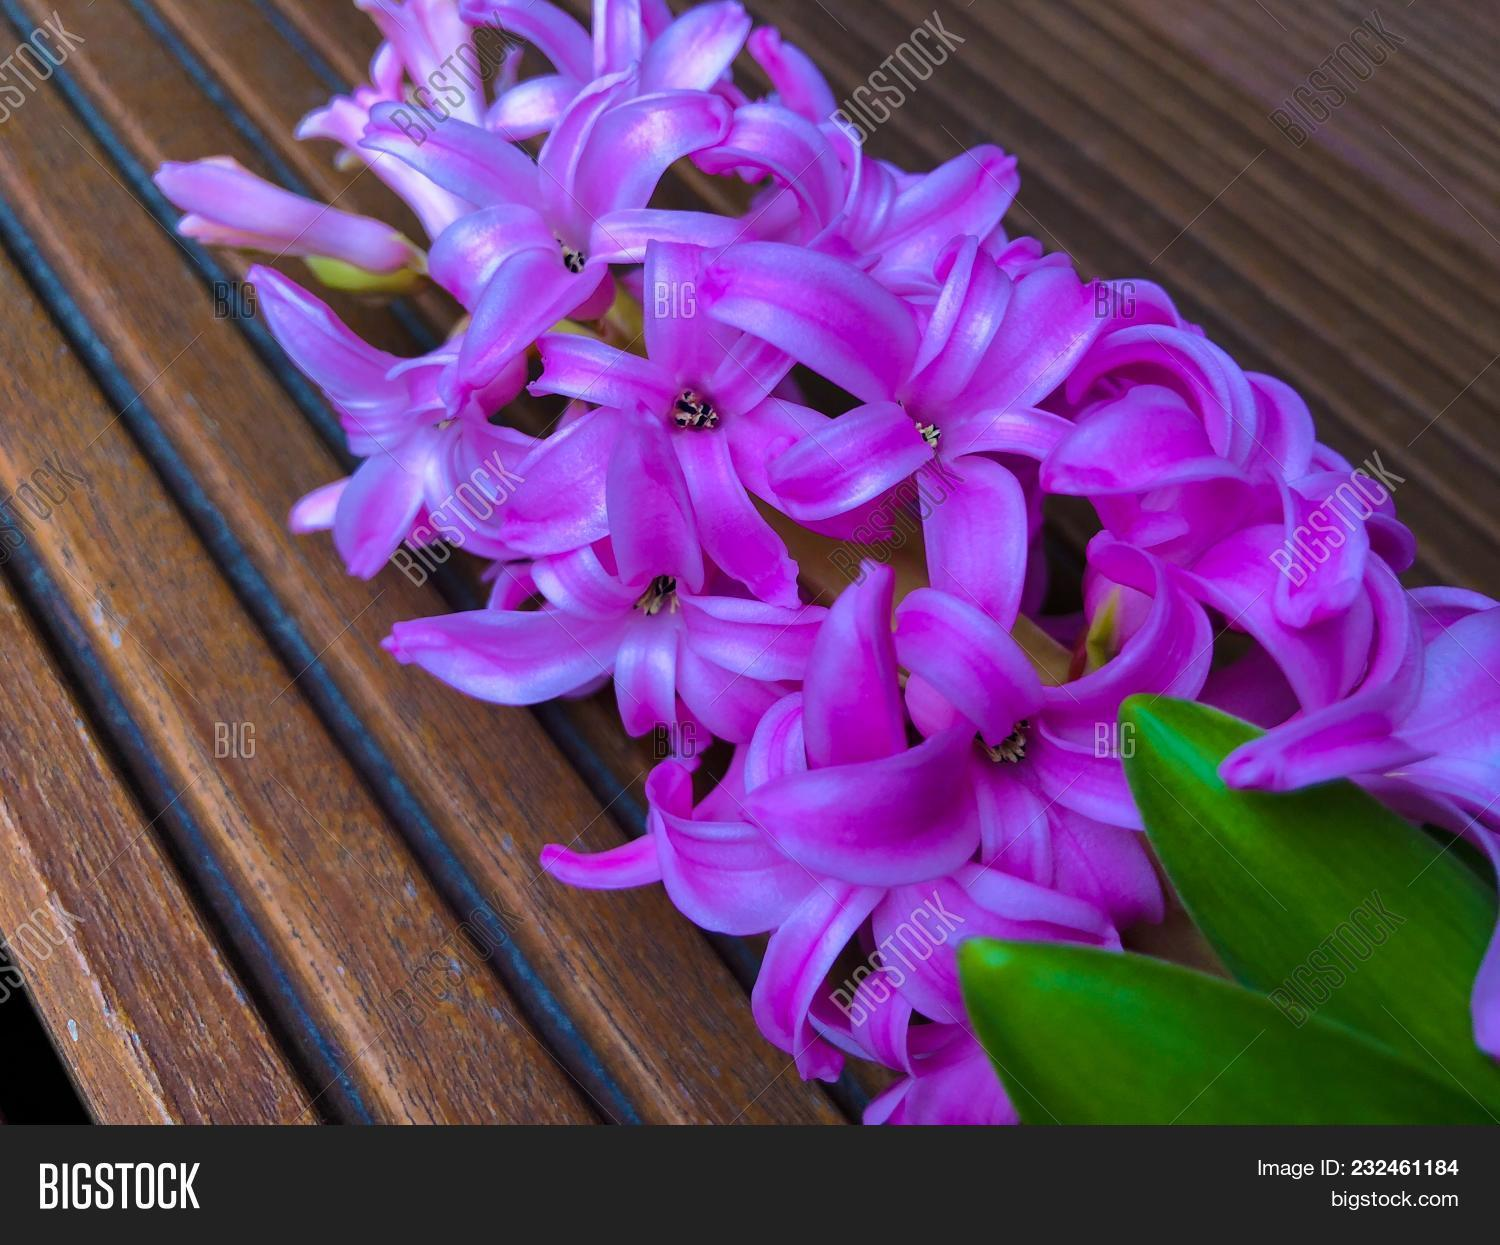 Hyacinth pink surprise image photo free trial bigstock hyacinth pink surprise dutch hyacinth spring bulbs spring flowers the perfume of blooming mightylinksfo